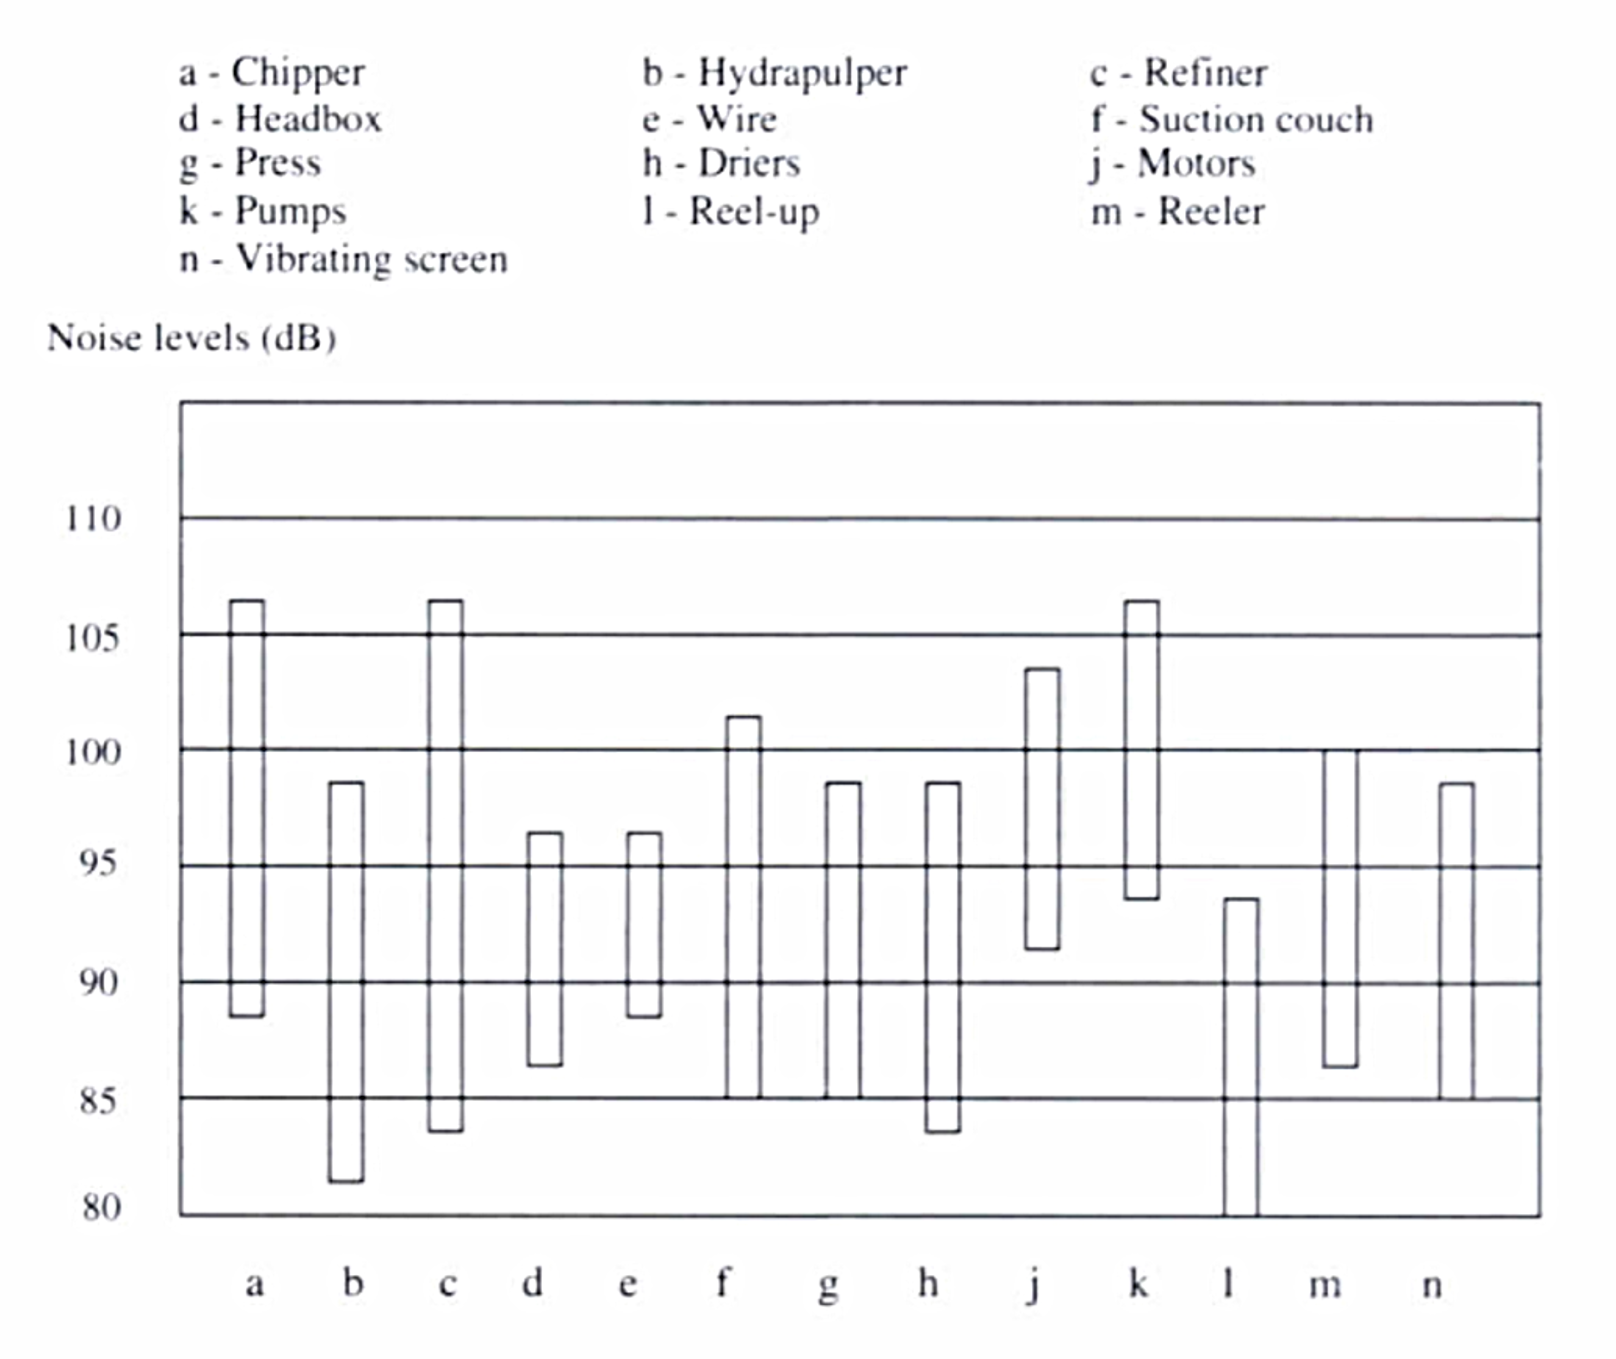 noise levels at various stage in the papermaking process